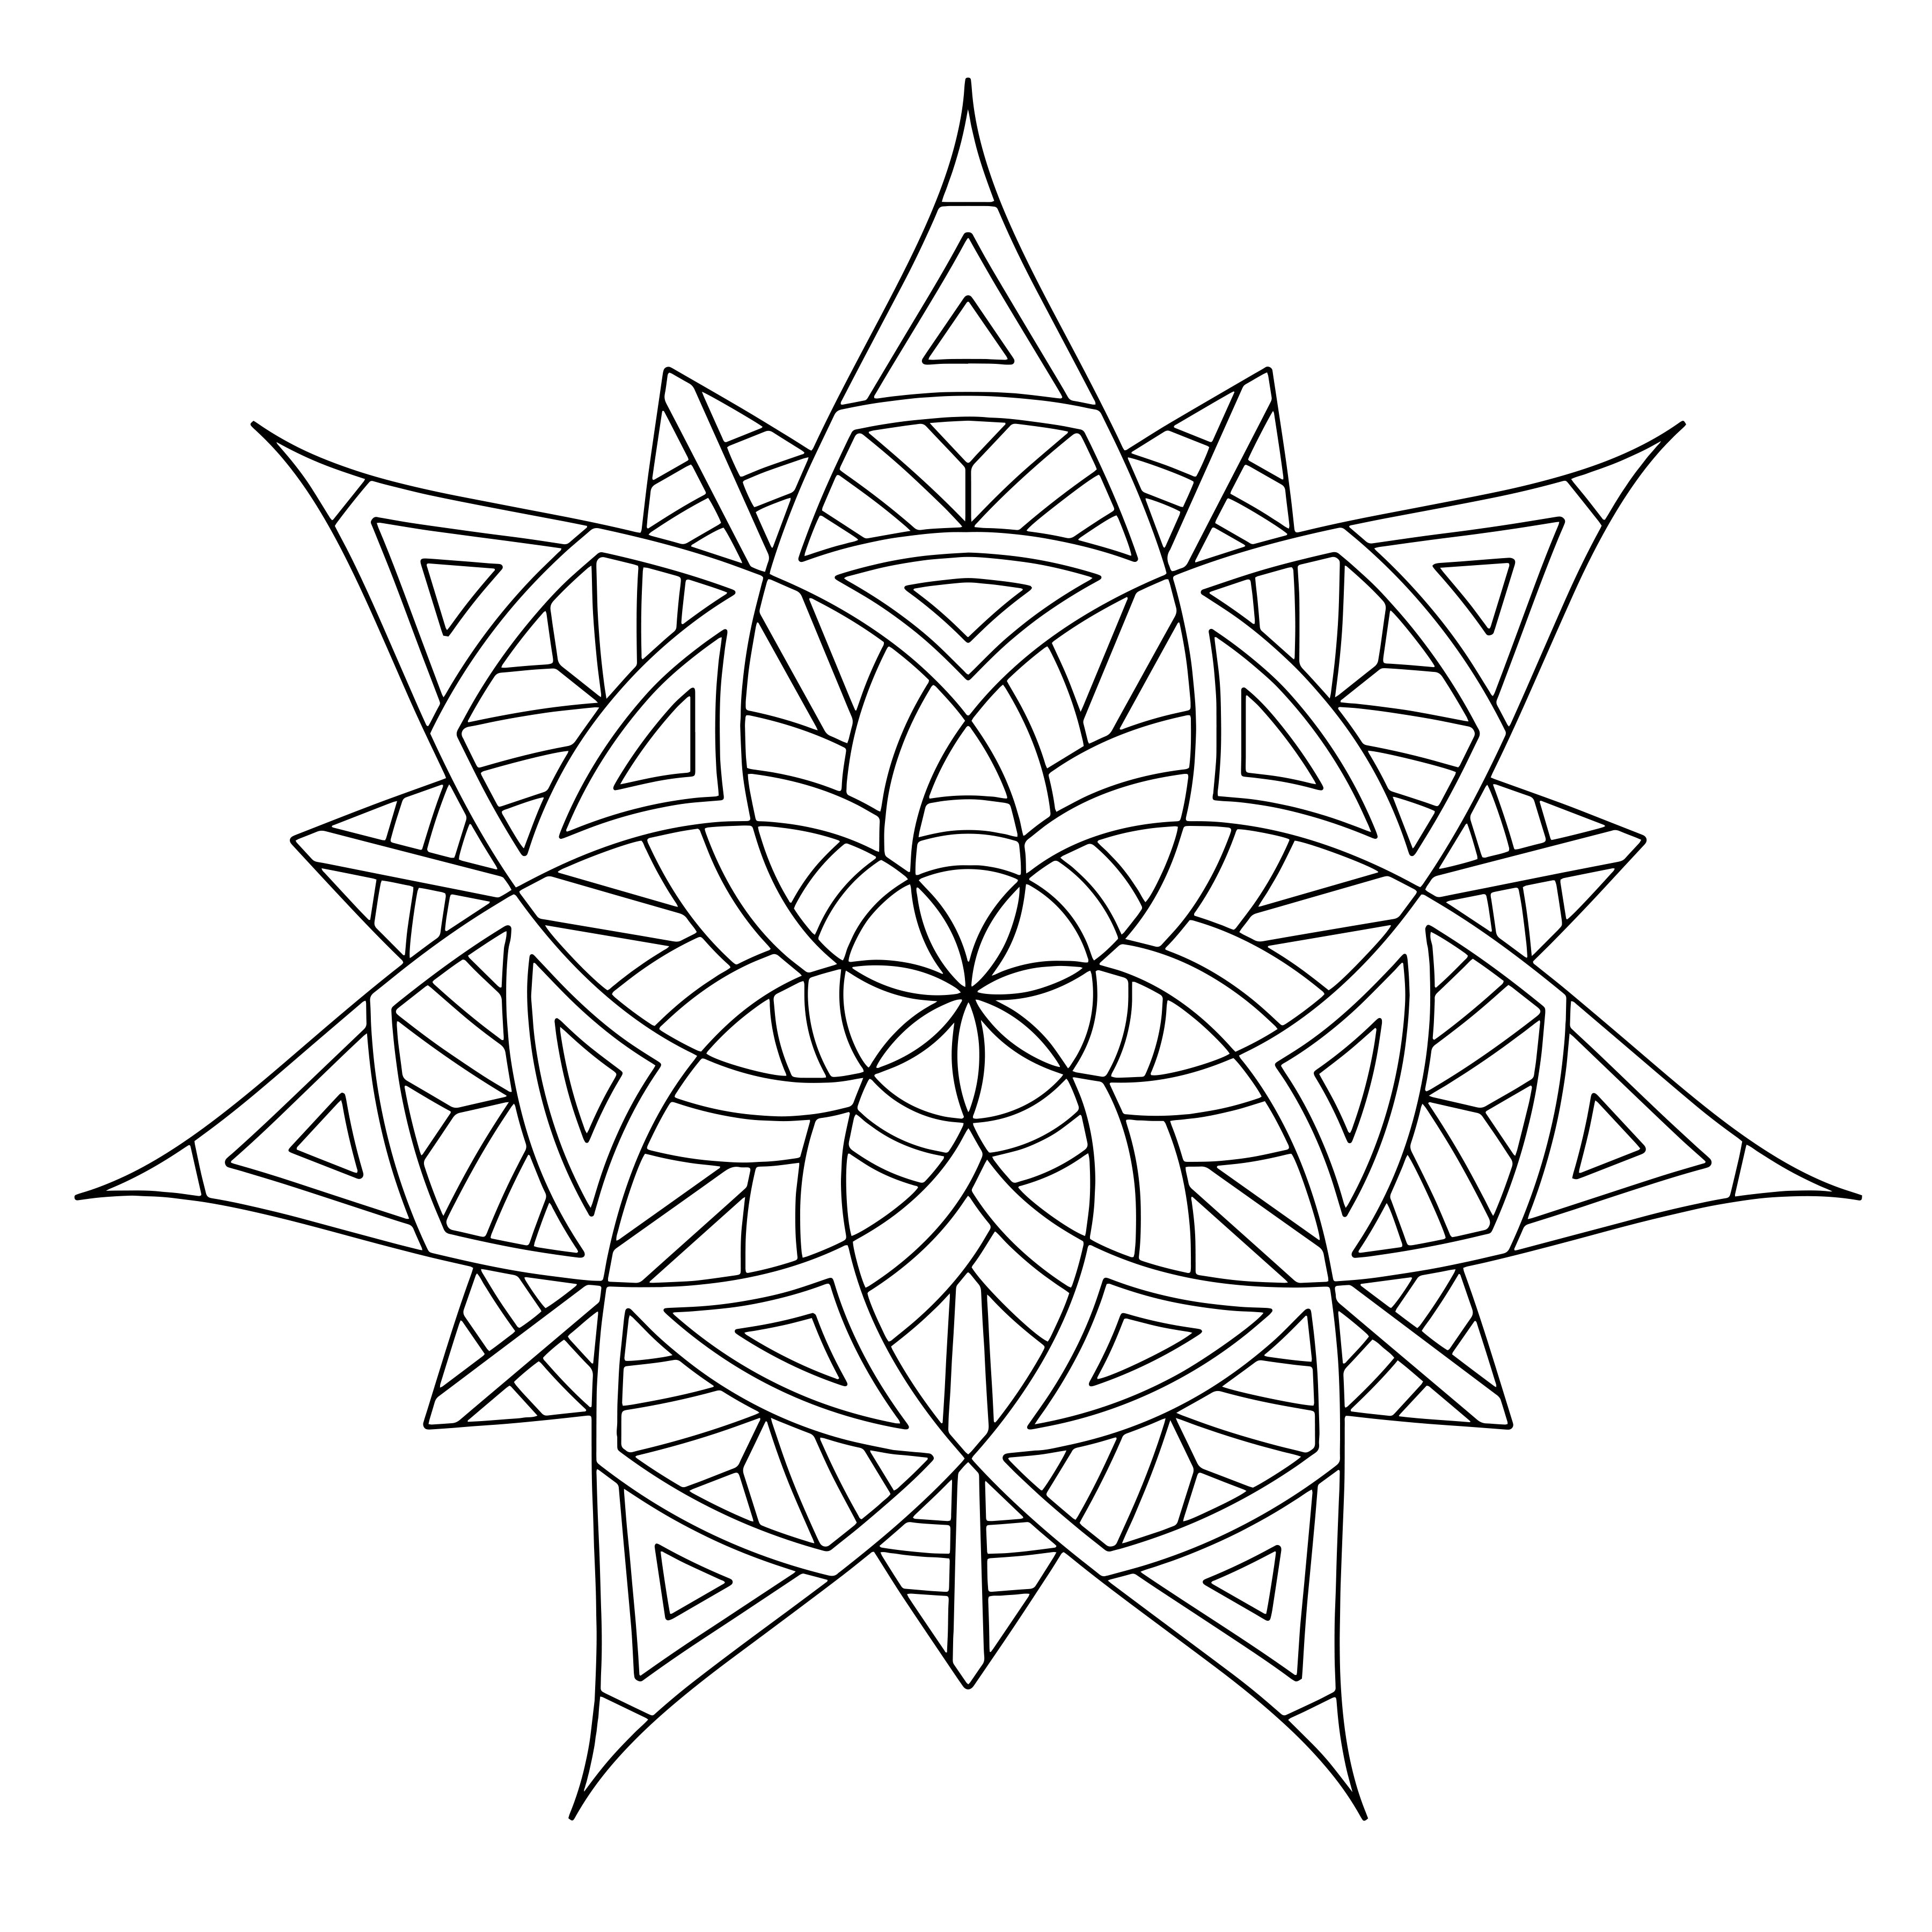 Shapes images for coloring